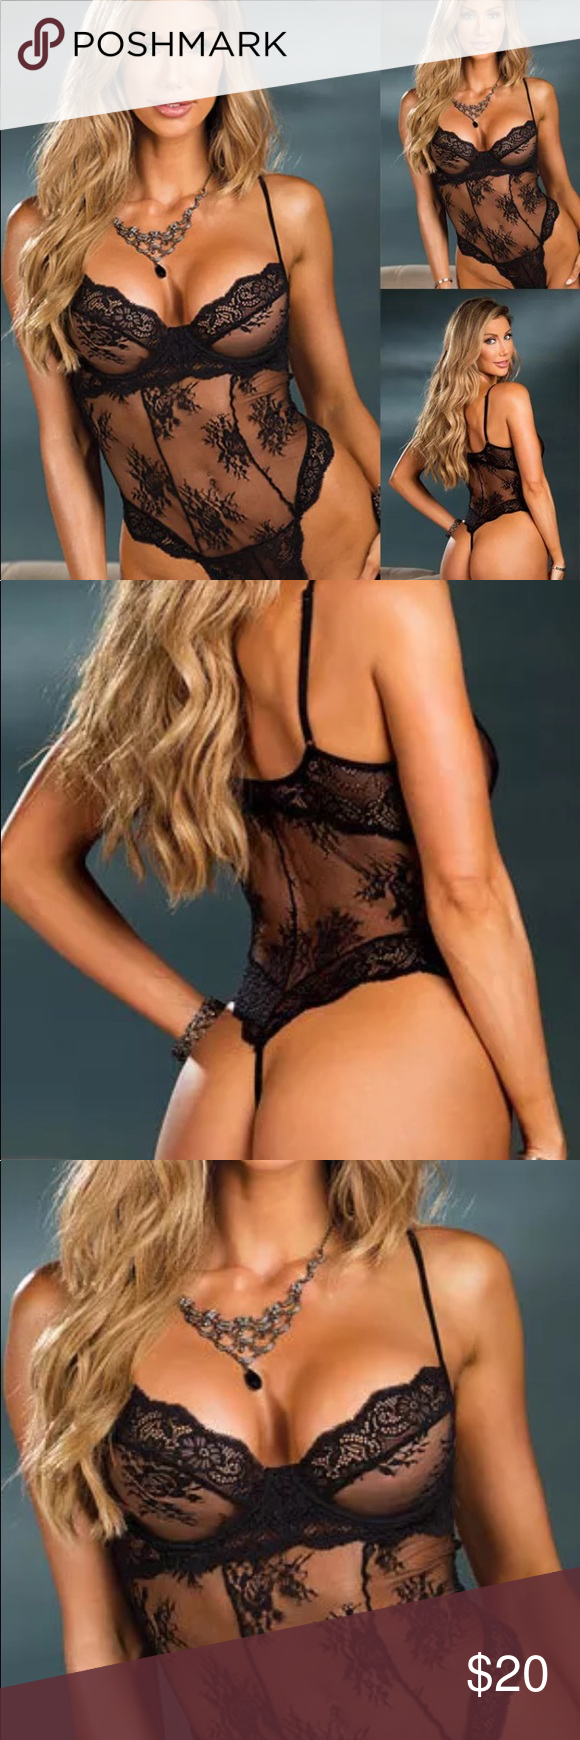 "984aae21bcd ""MIDNIGHT MADNESS"" Black Sheer Lace Thong Teddy ONE Piece Spandex BLACK  Sheer Lace String"